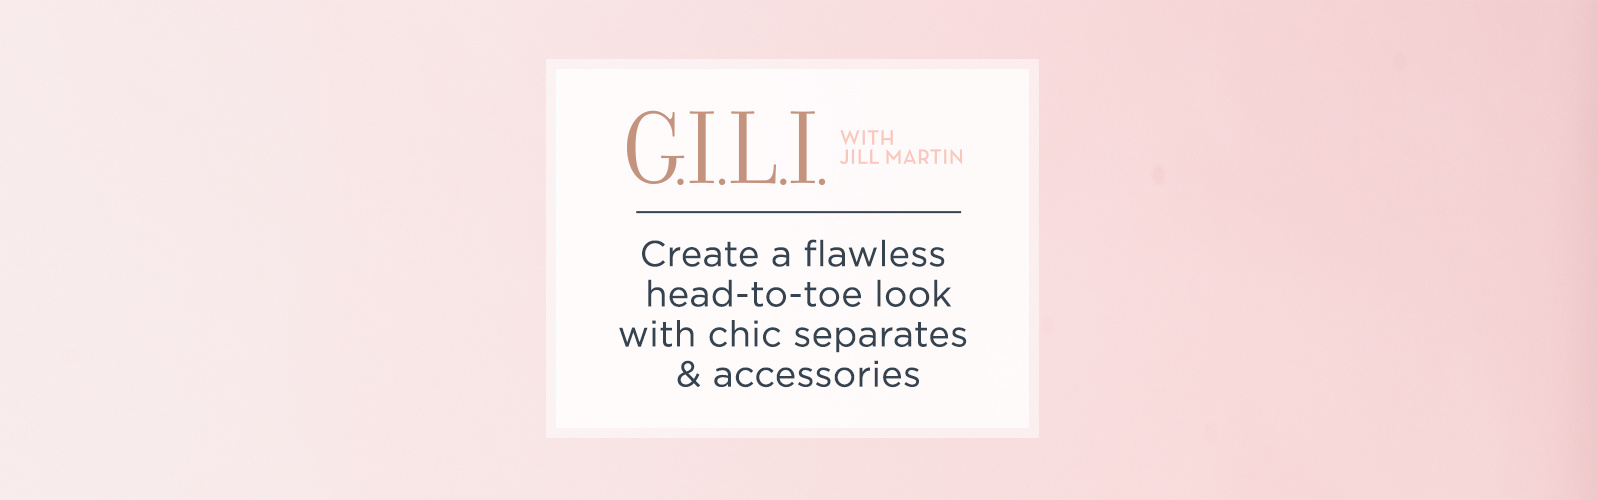 G.I.L.I.  Create a flawless head-to-toe look with chic separates & accessories